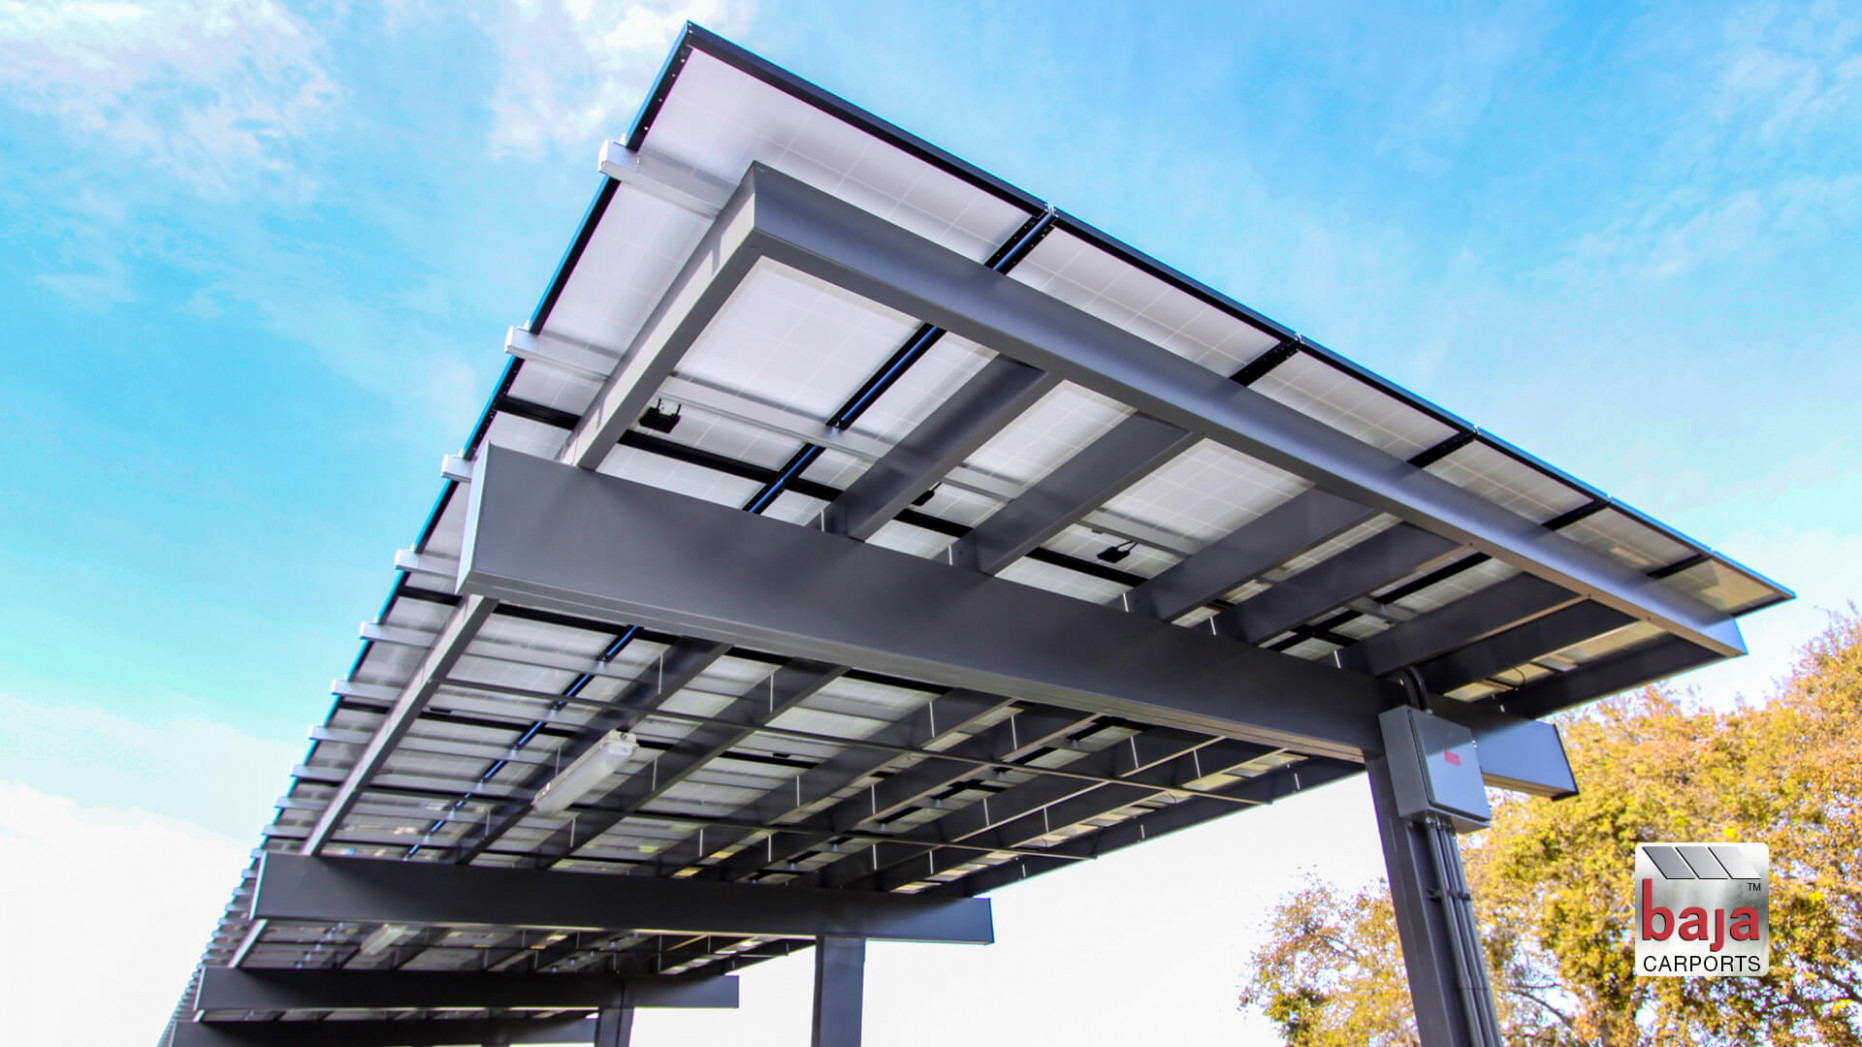 Carport Solutions For Parking Lots | Baja Carports Executive Carport Parking